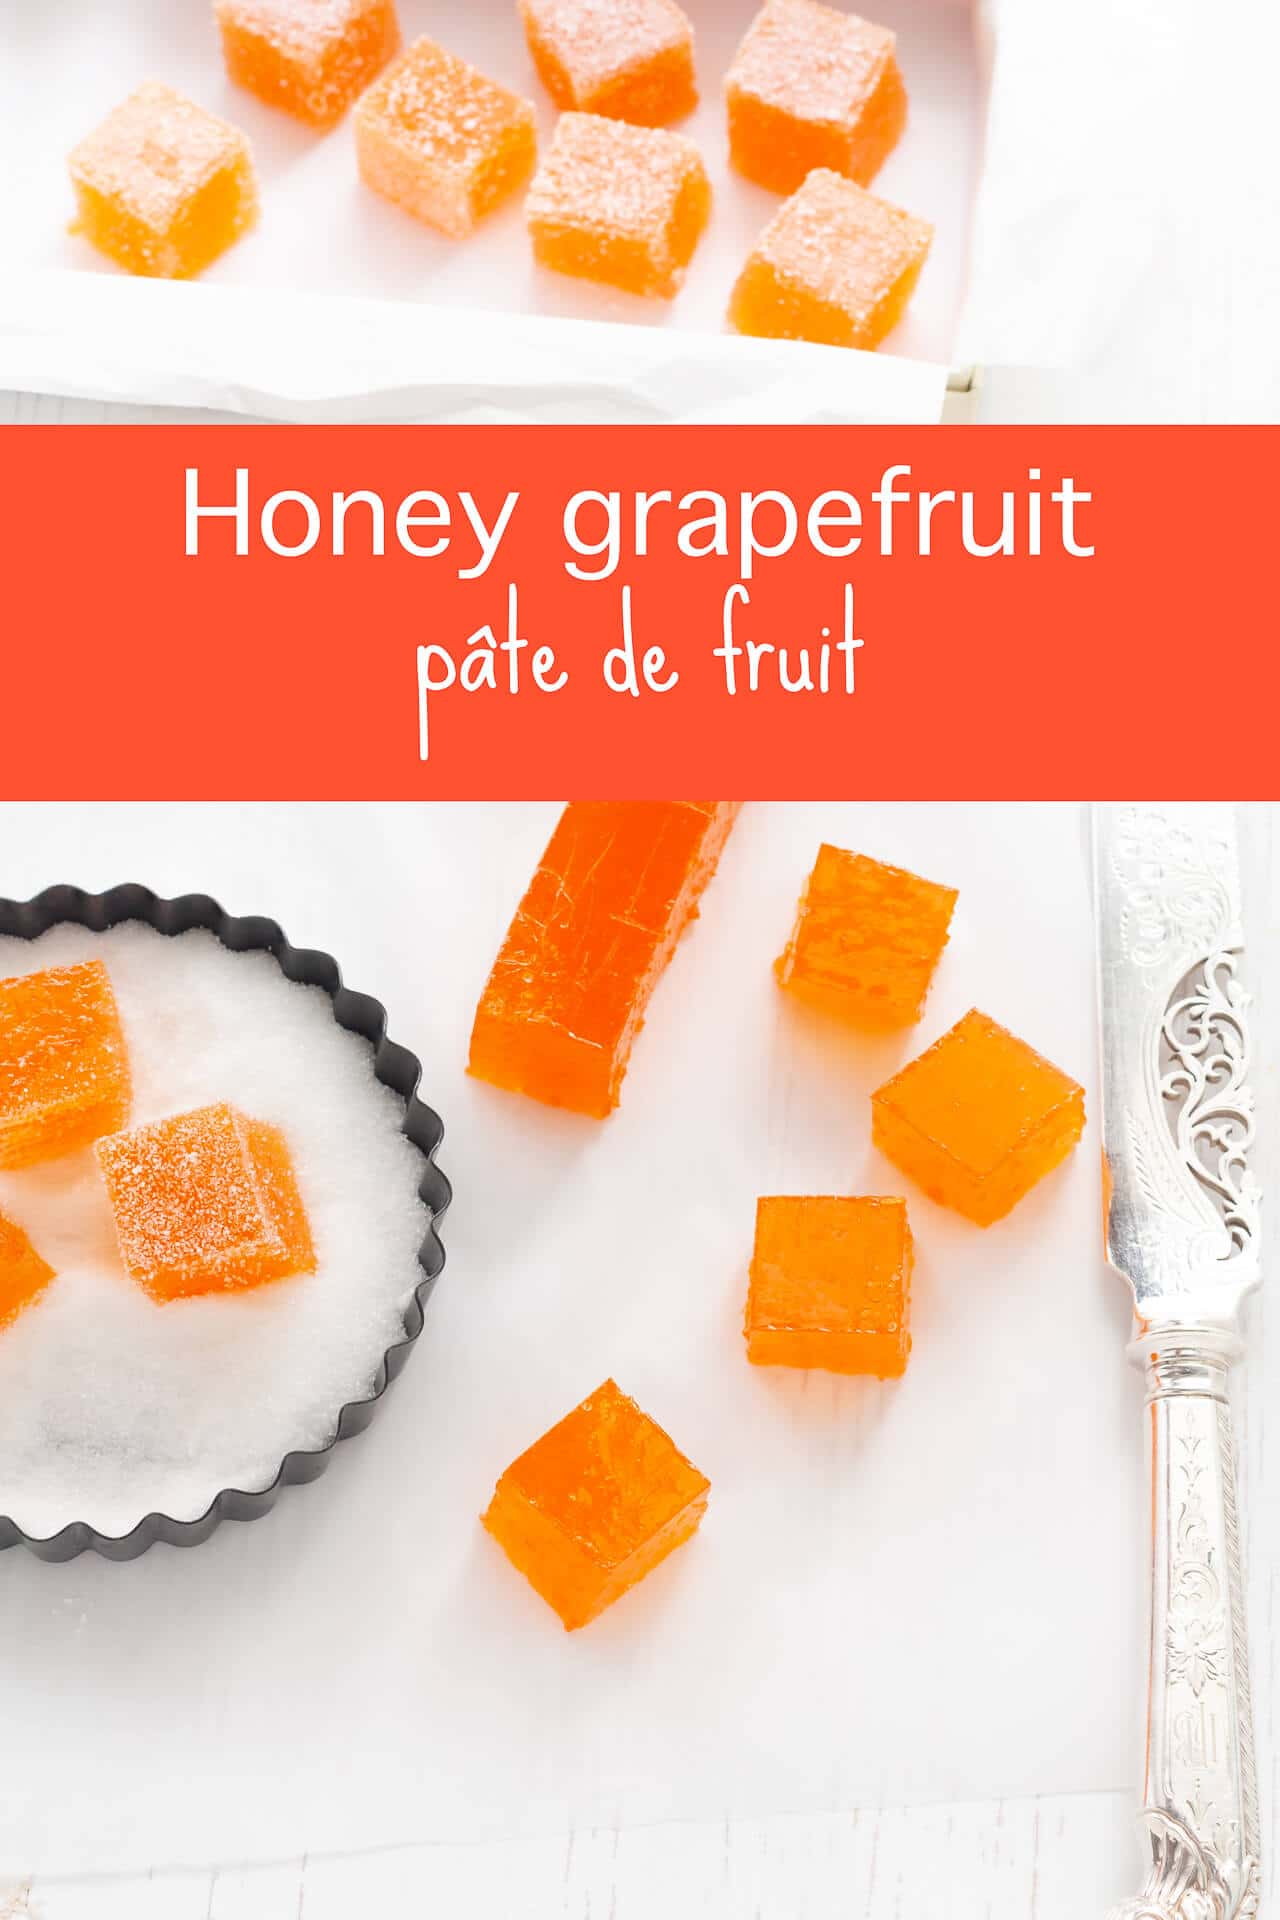 Cutting homemade grapefruit pâte de fruit with a large knife, then dipping cubes of pâte de fruit in fine granulated sugar to coat the candy on all sides before serving